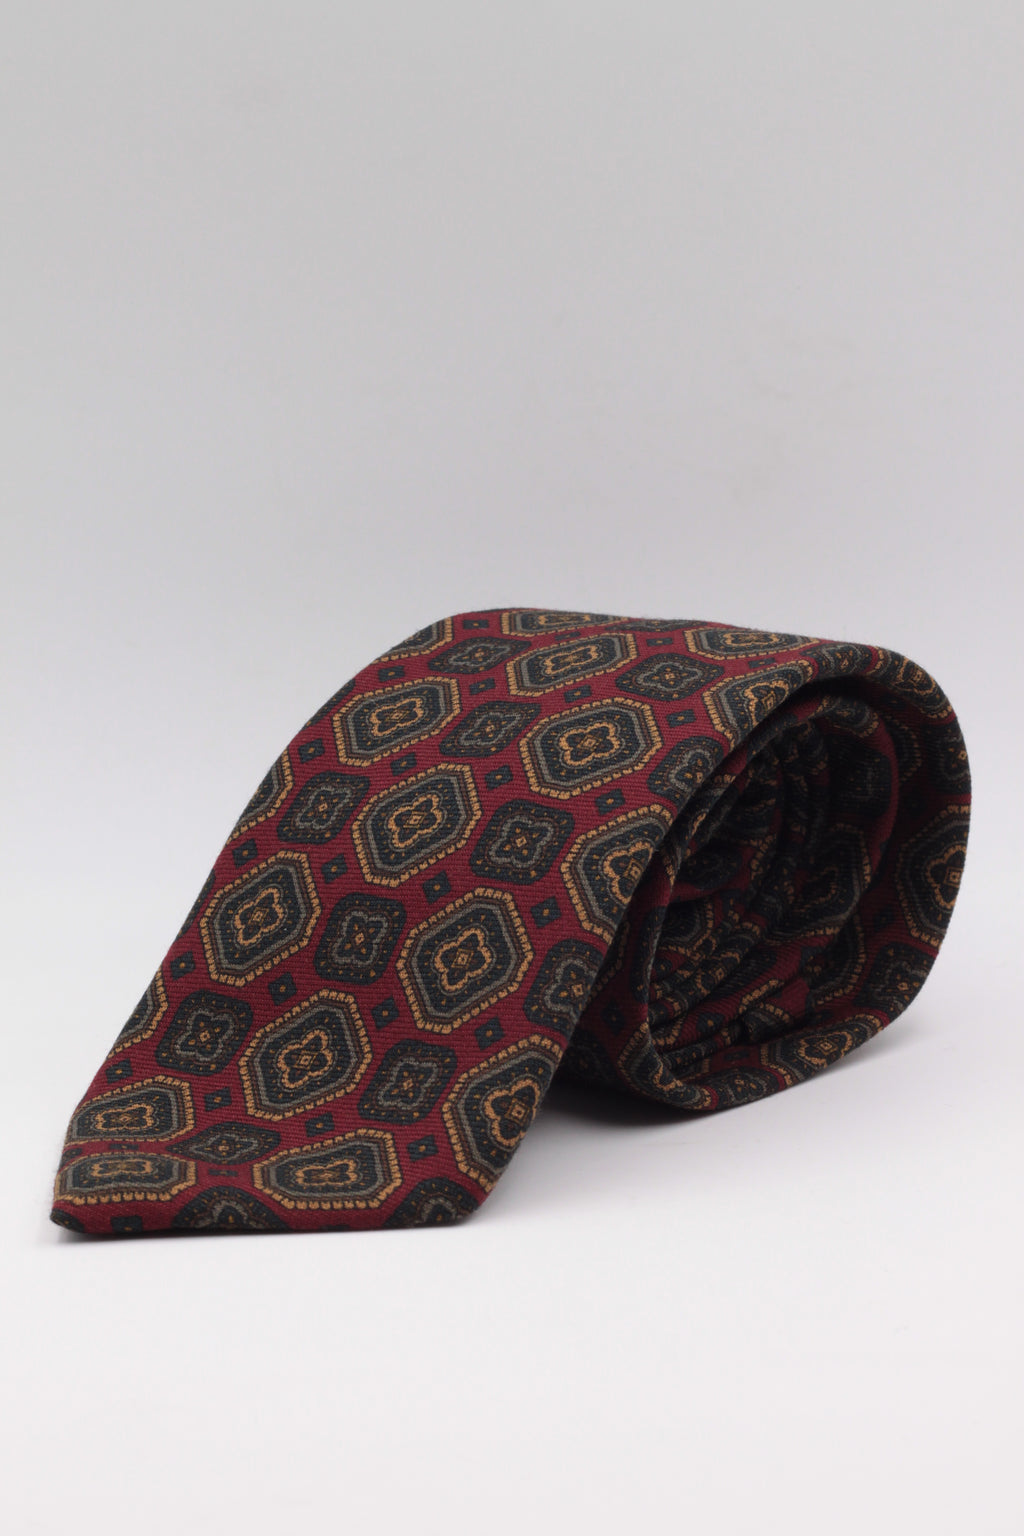 Red Blood, Green and Brown print tie